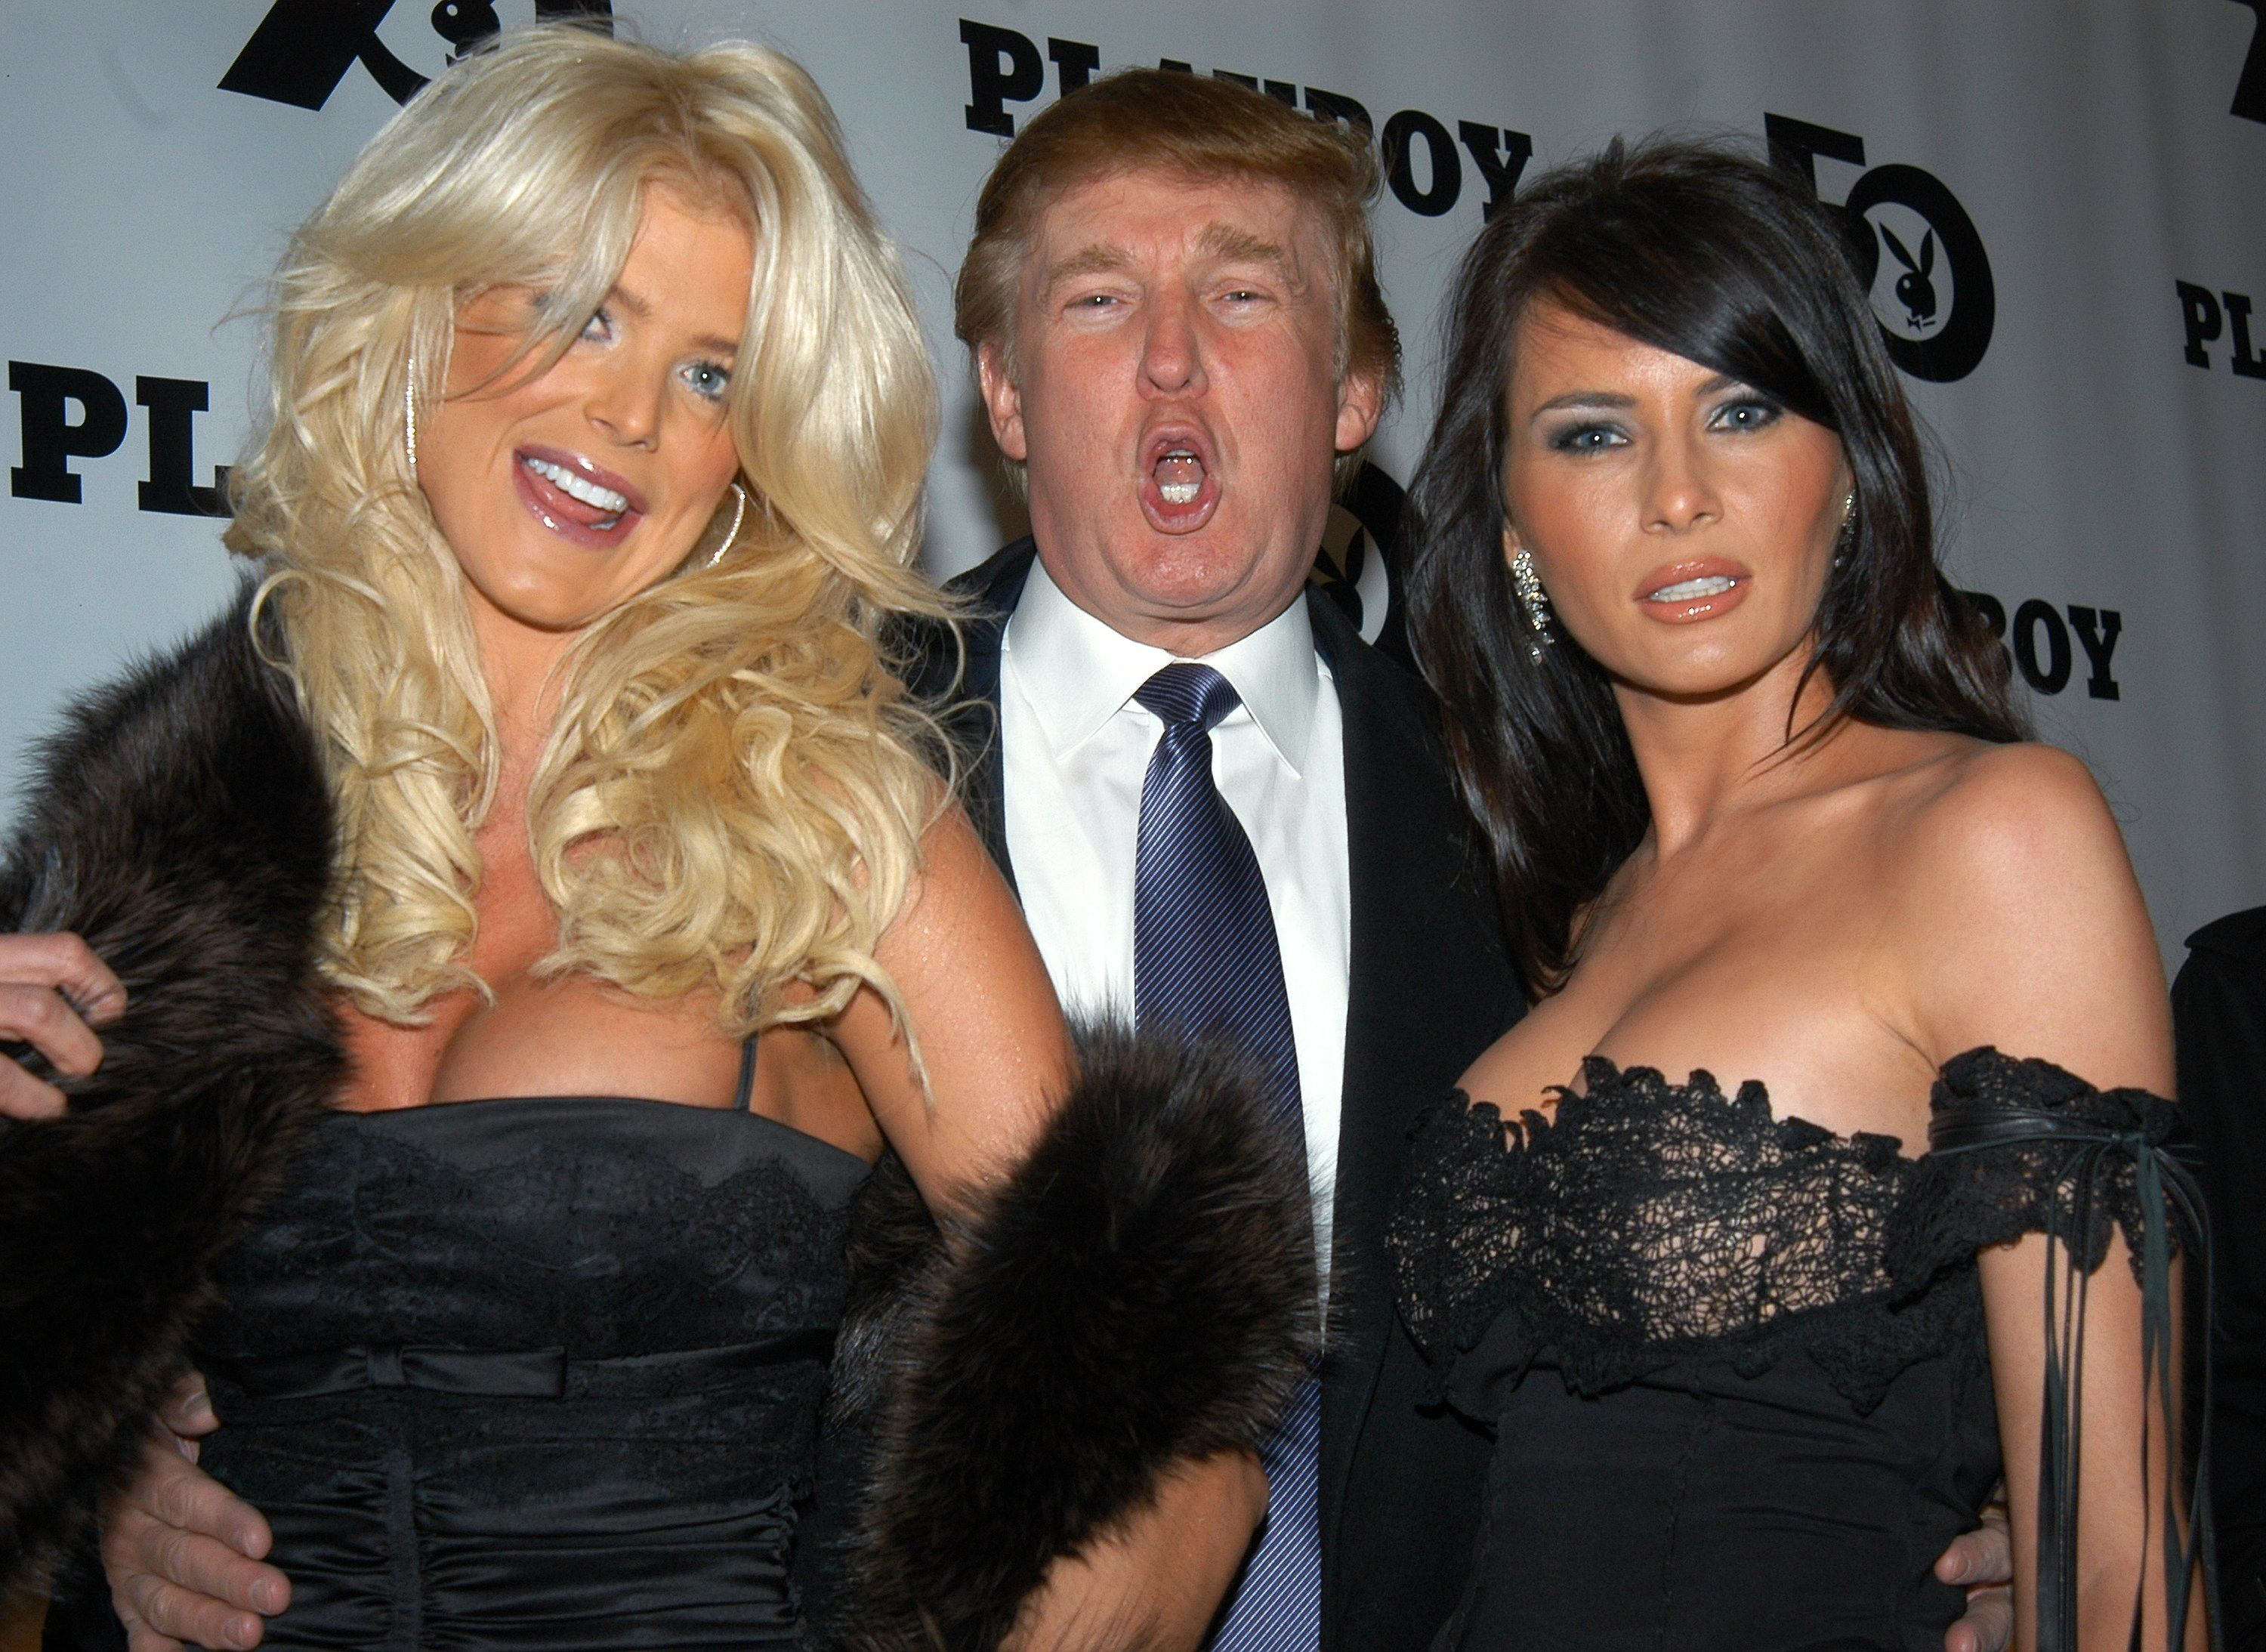 Donald Trump is flanked by Victoria Silvstedt, 1997 Playmate of the Year, and his then-girlfriend, Melania Knauss, at Playboy